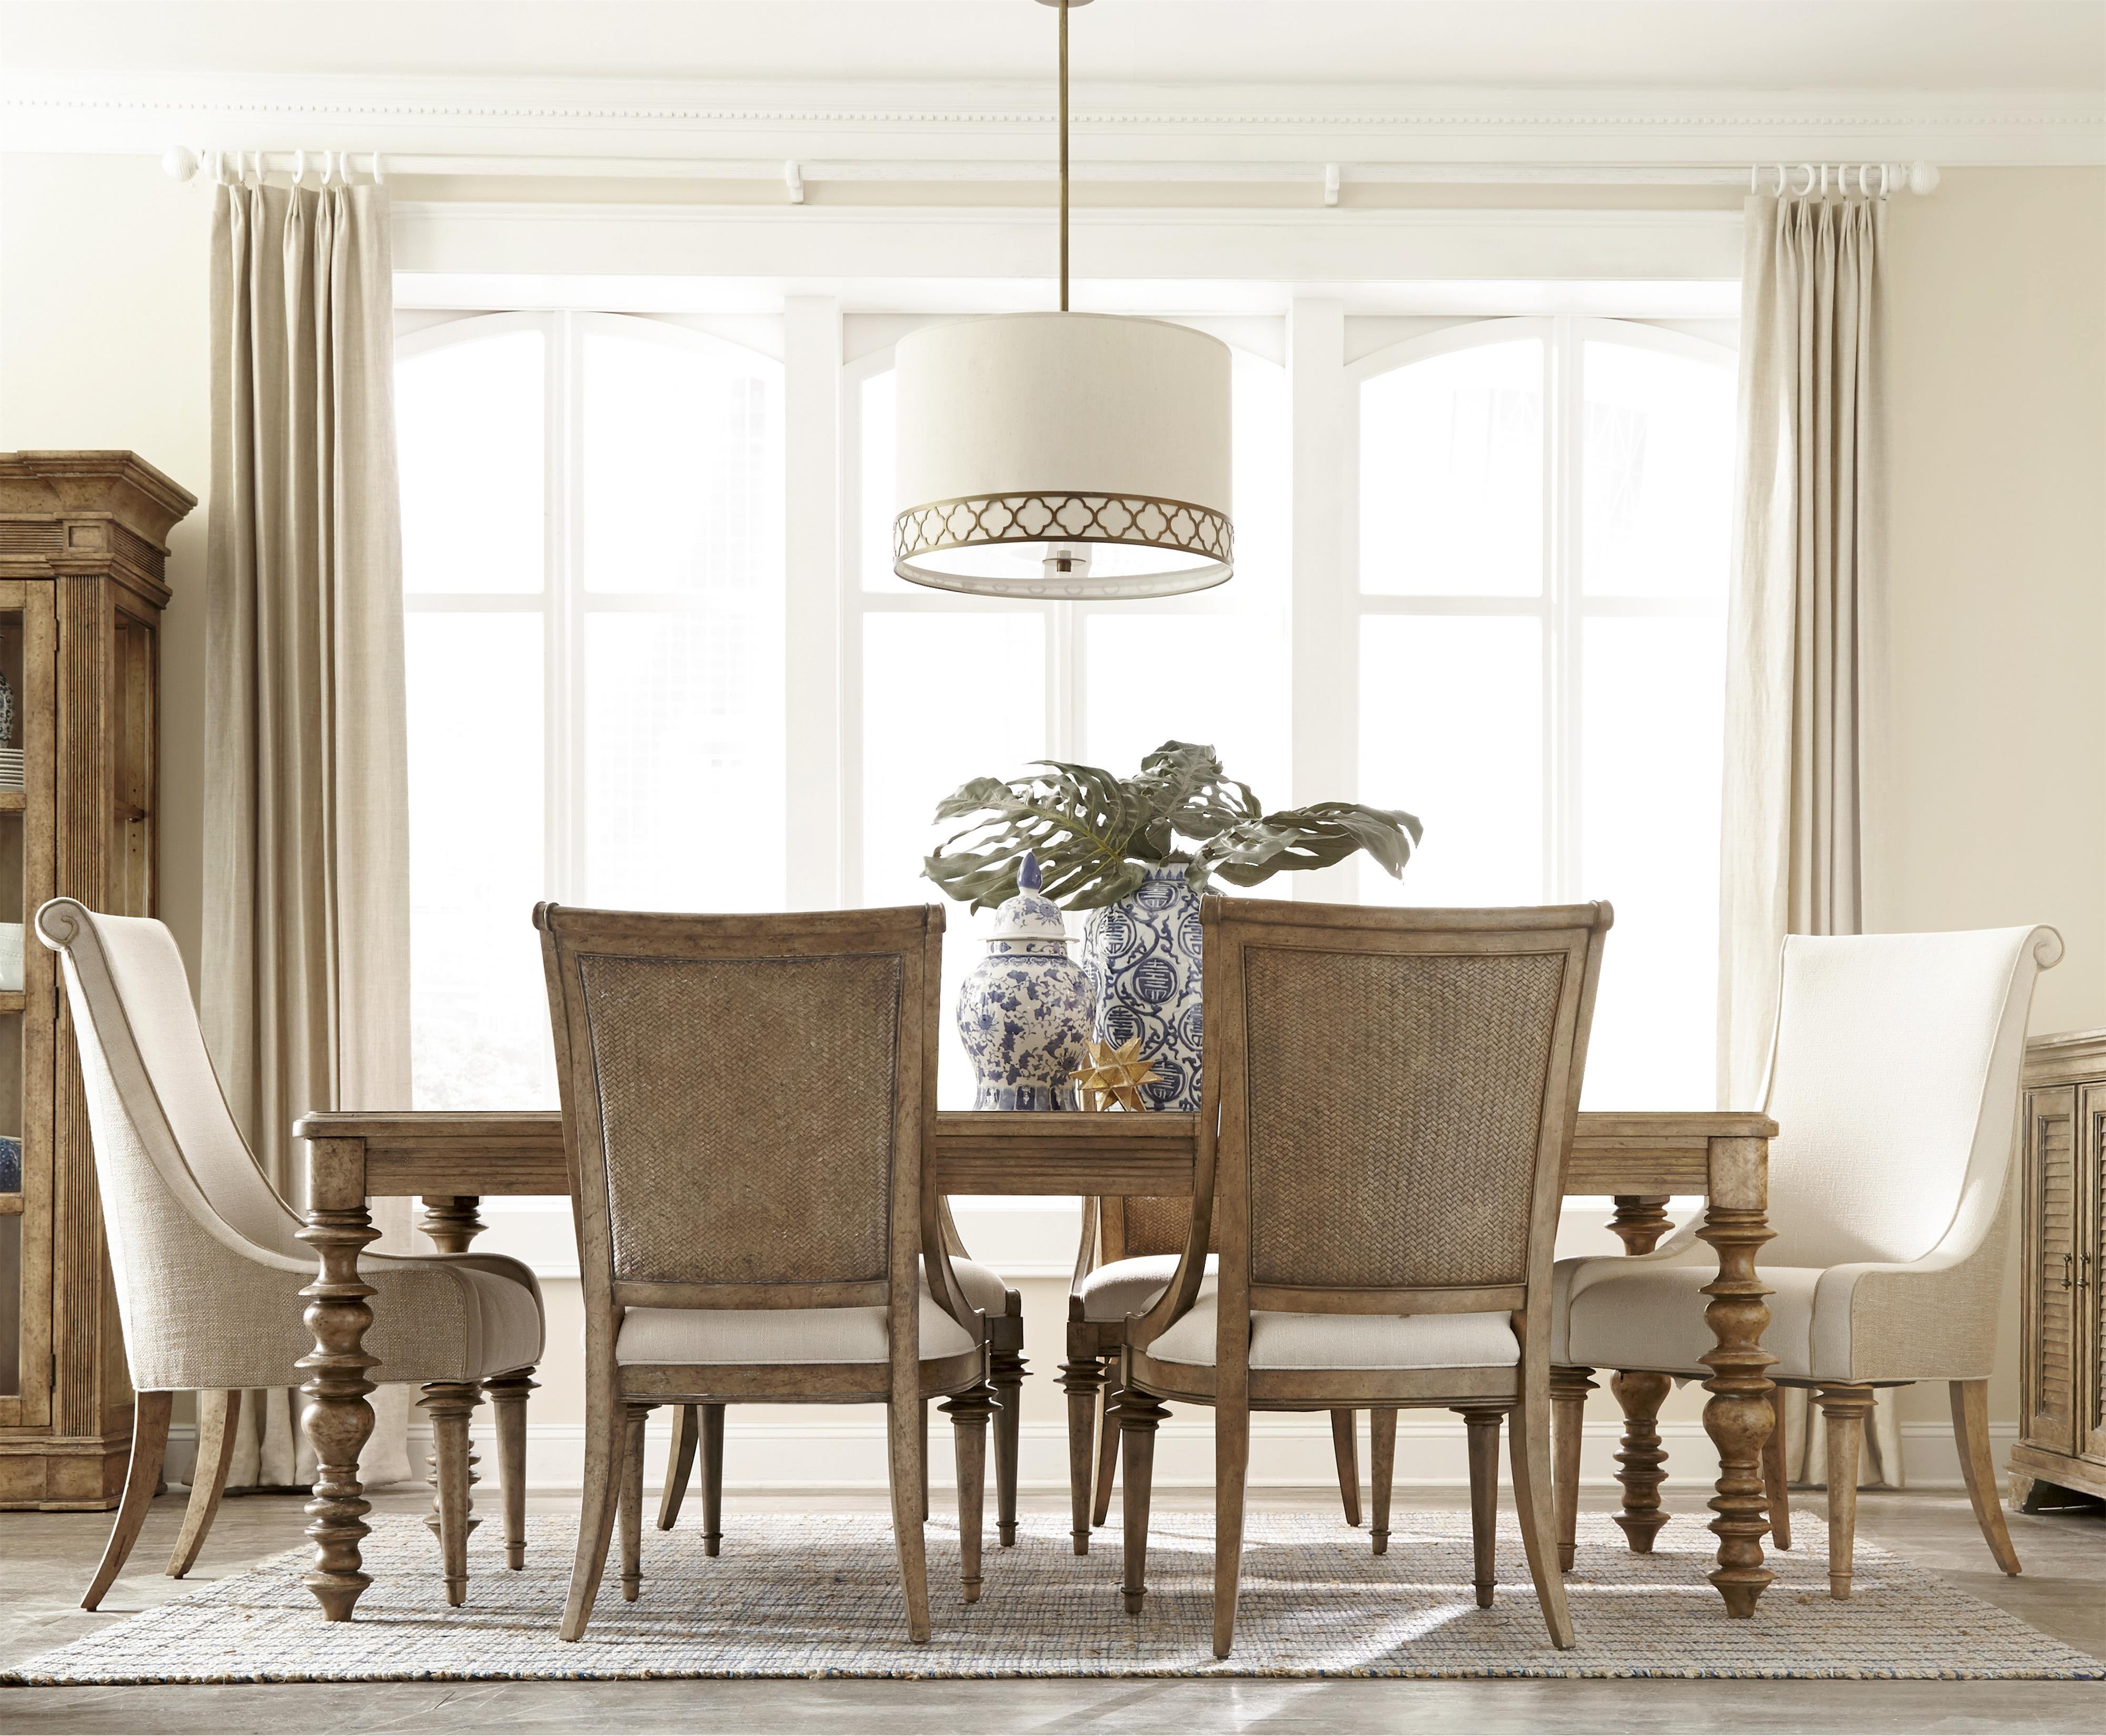 Dining room host chairs